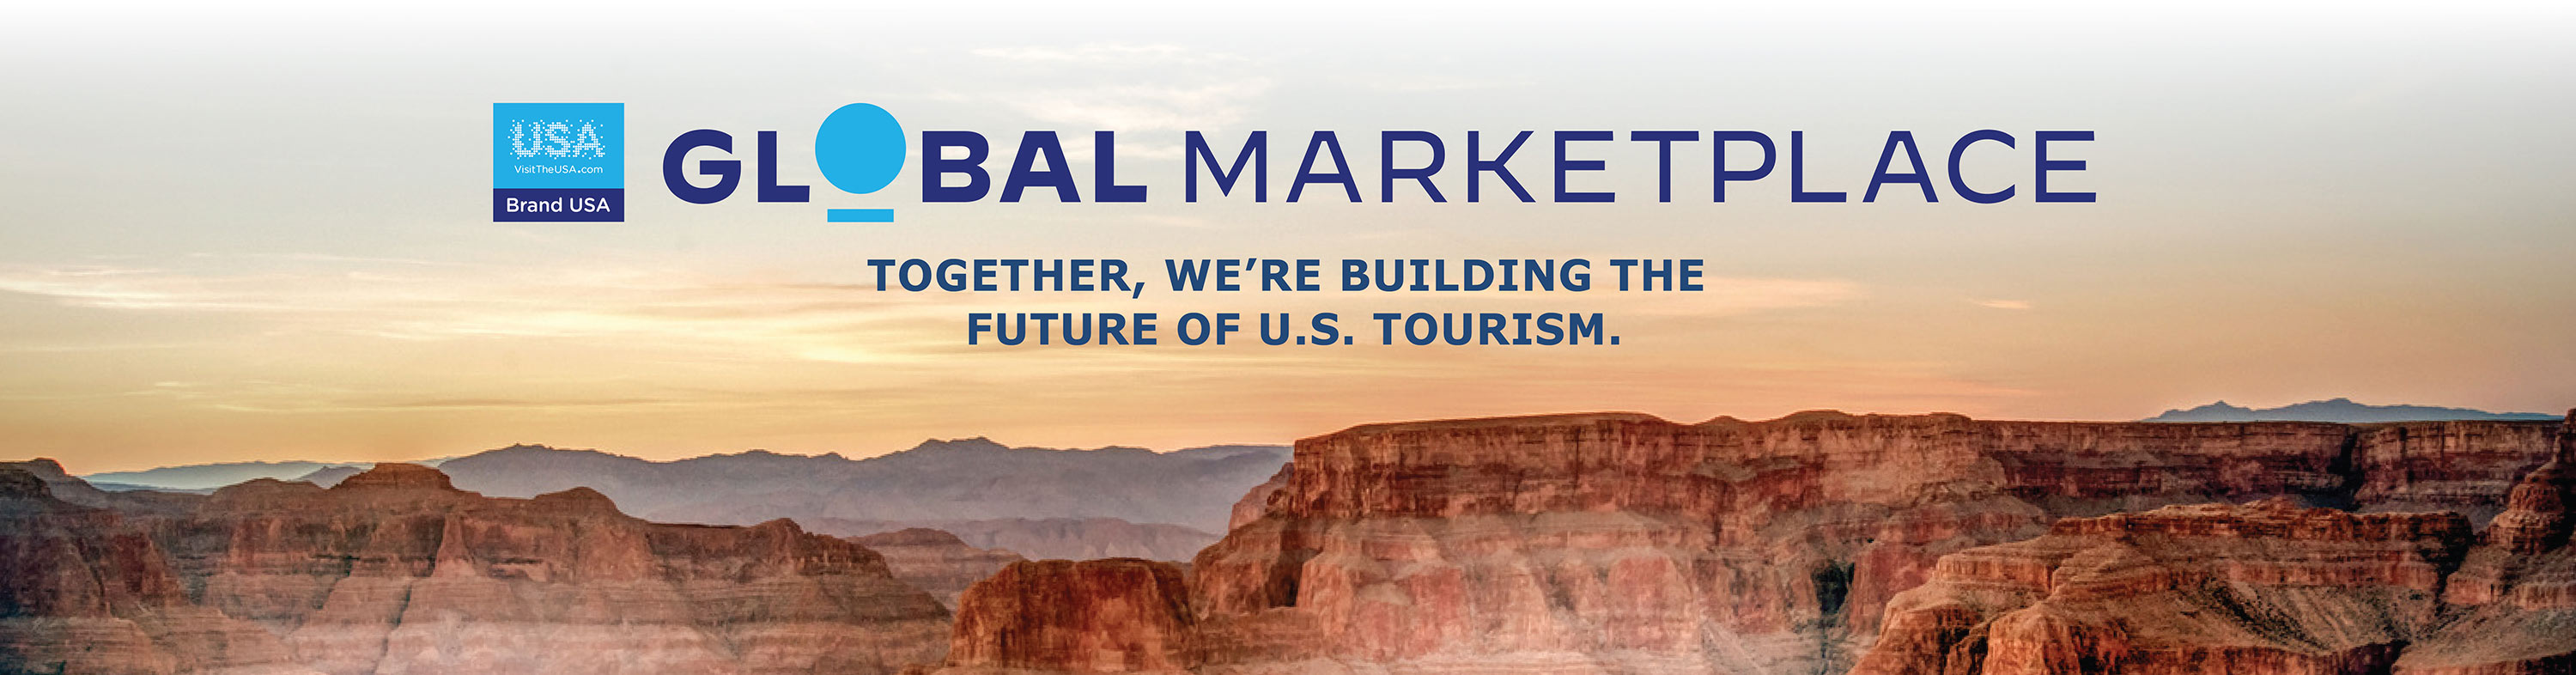 Brand USA Global Marketplace: Together, we're building the future of U.S. Tourism